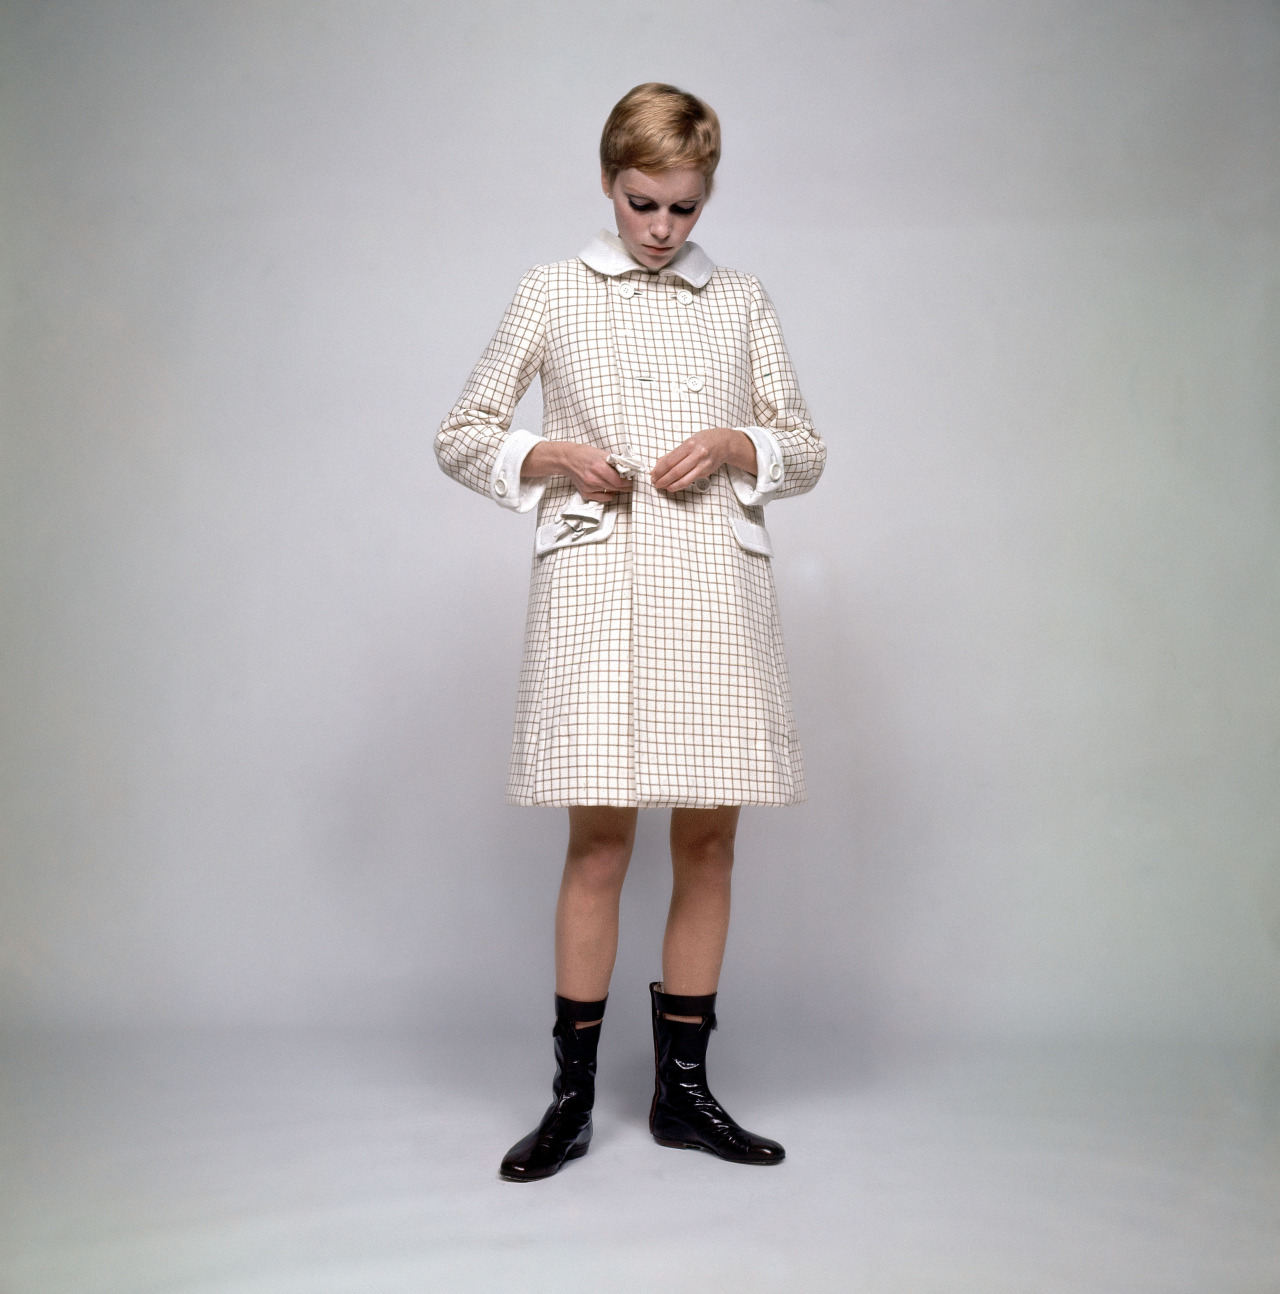 1967 Mia Farrow in Courreges